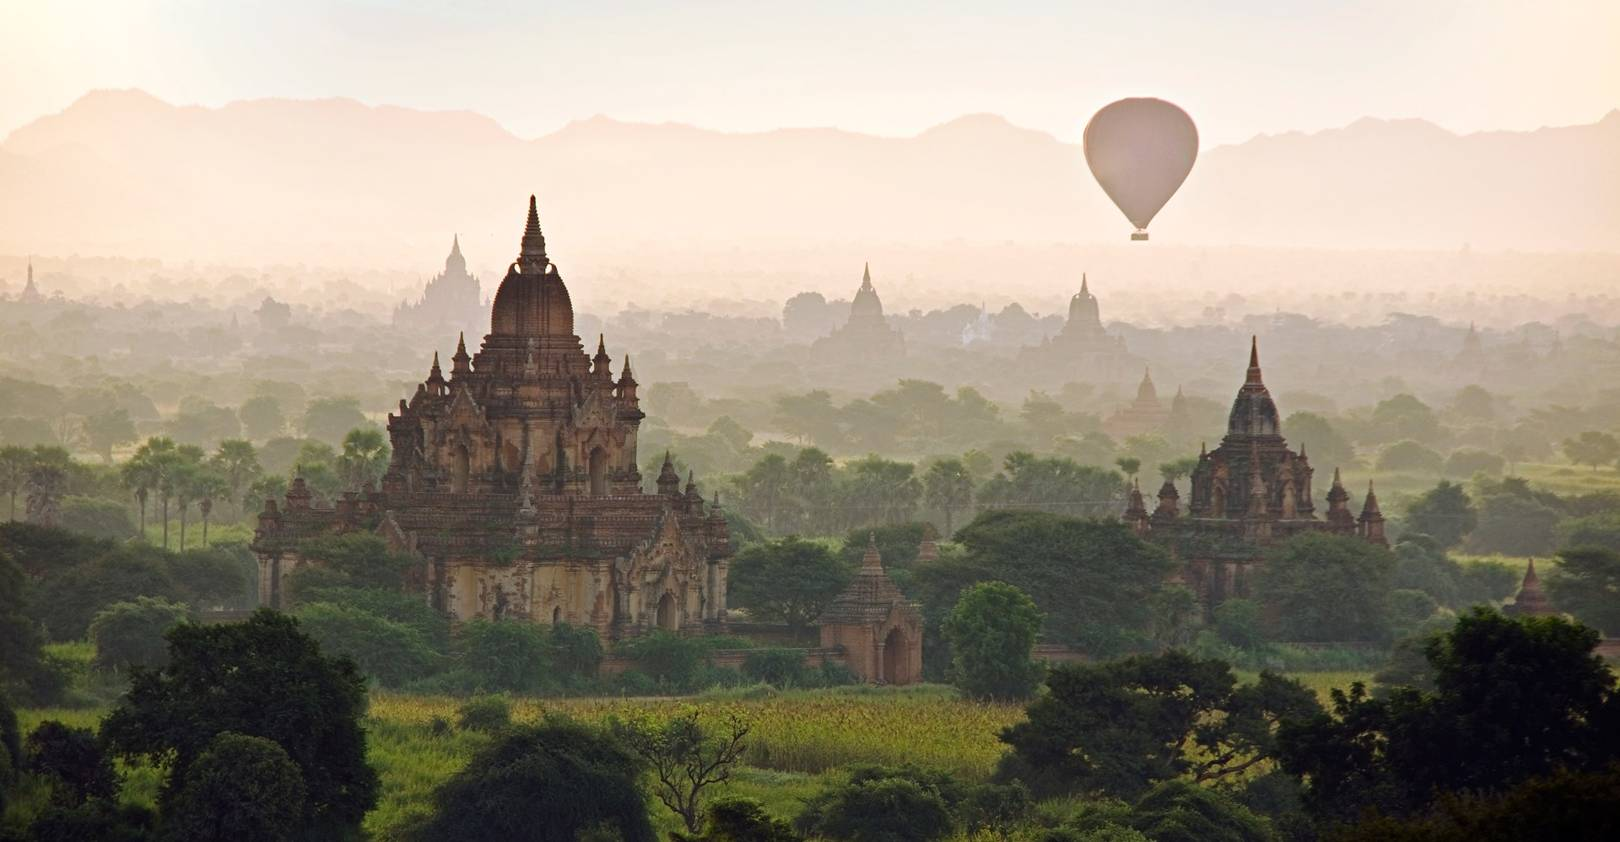 10 amazing things to do in Burma